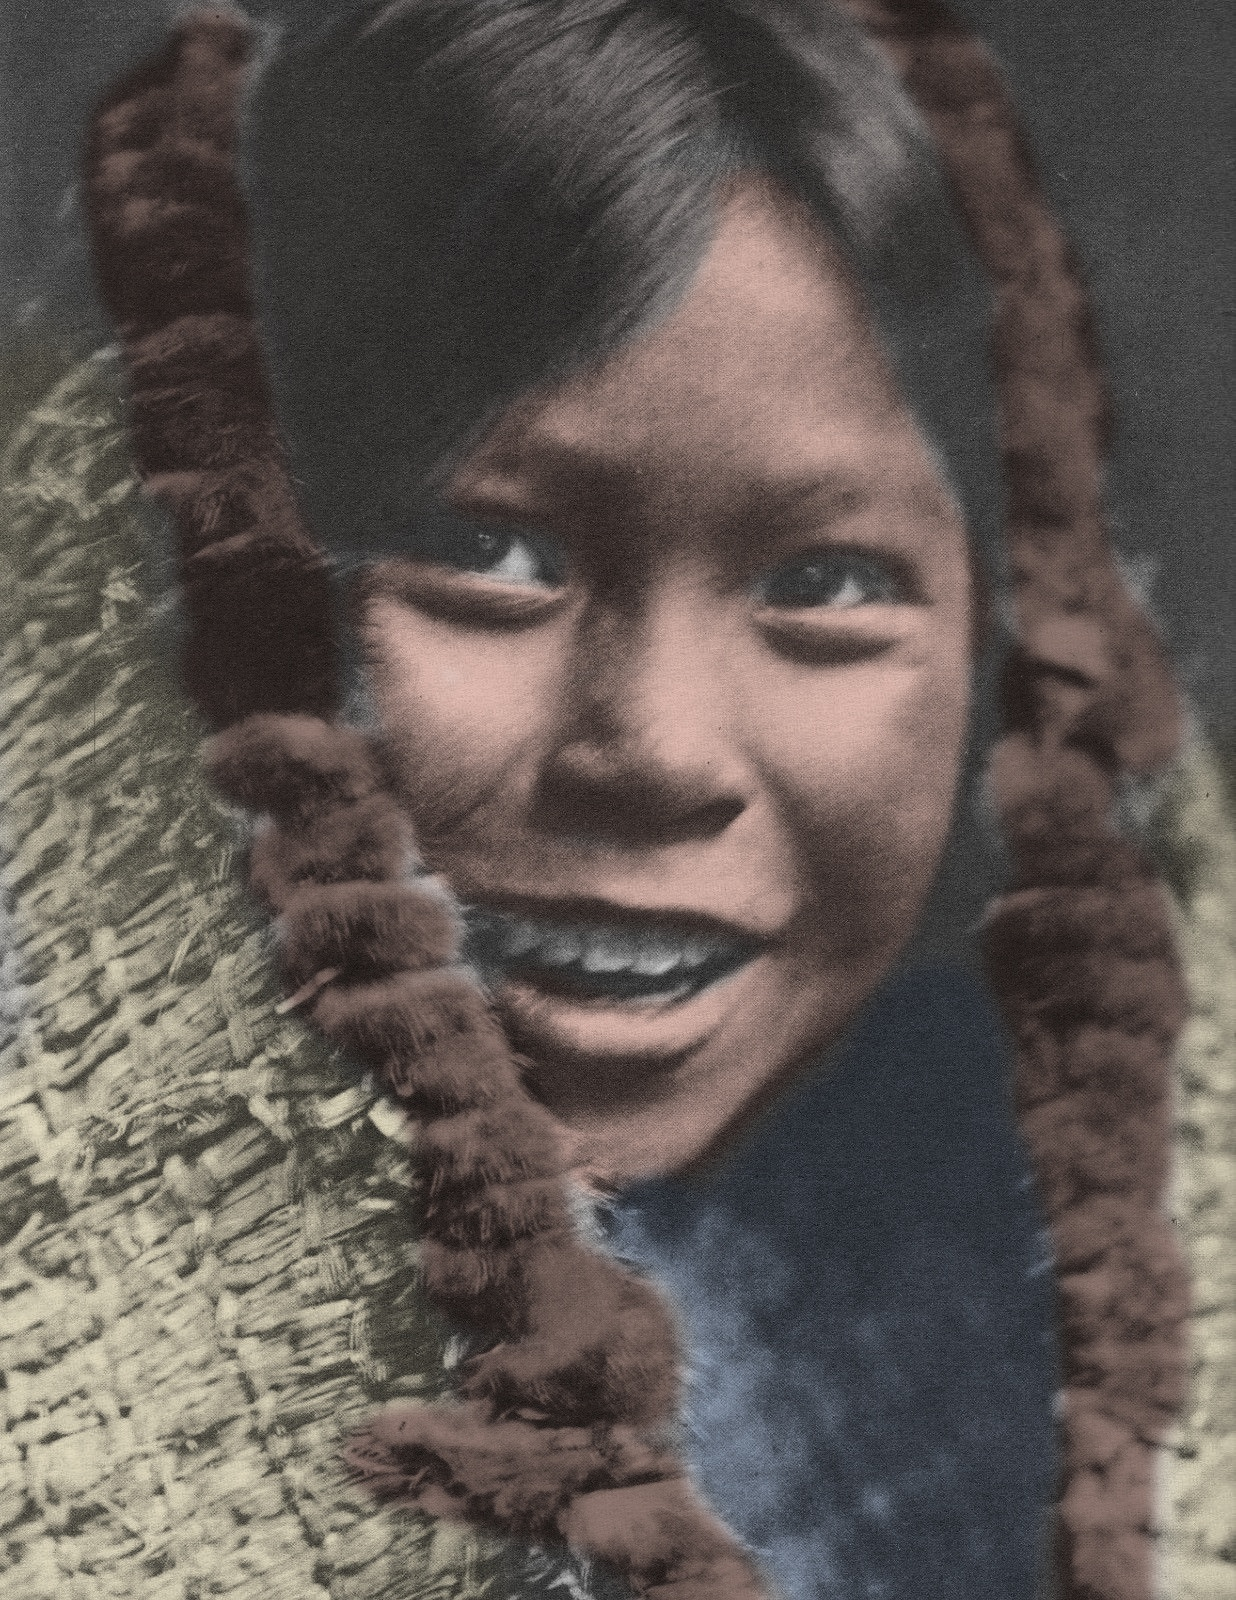 CLAYOQUOT Indian Girl 1900 Colored.jpeg